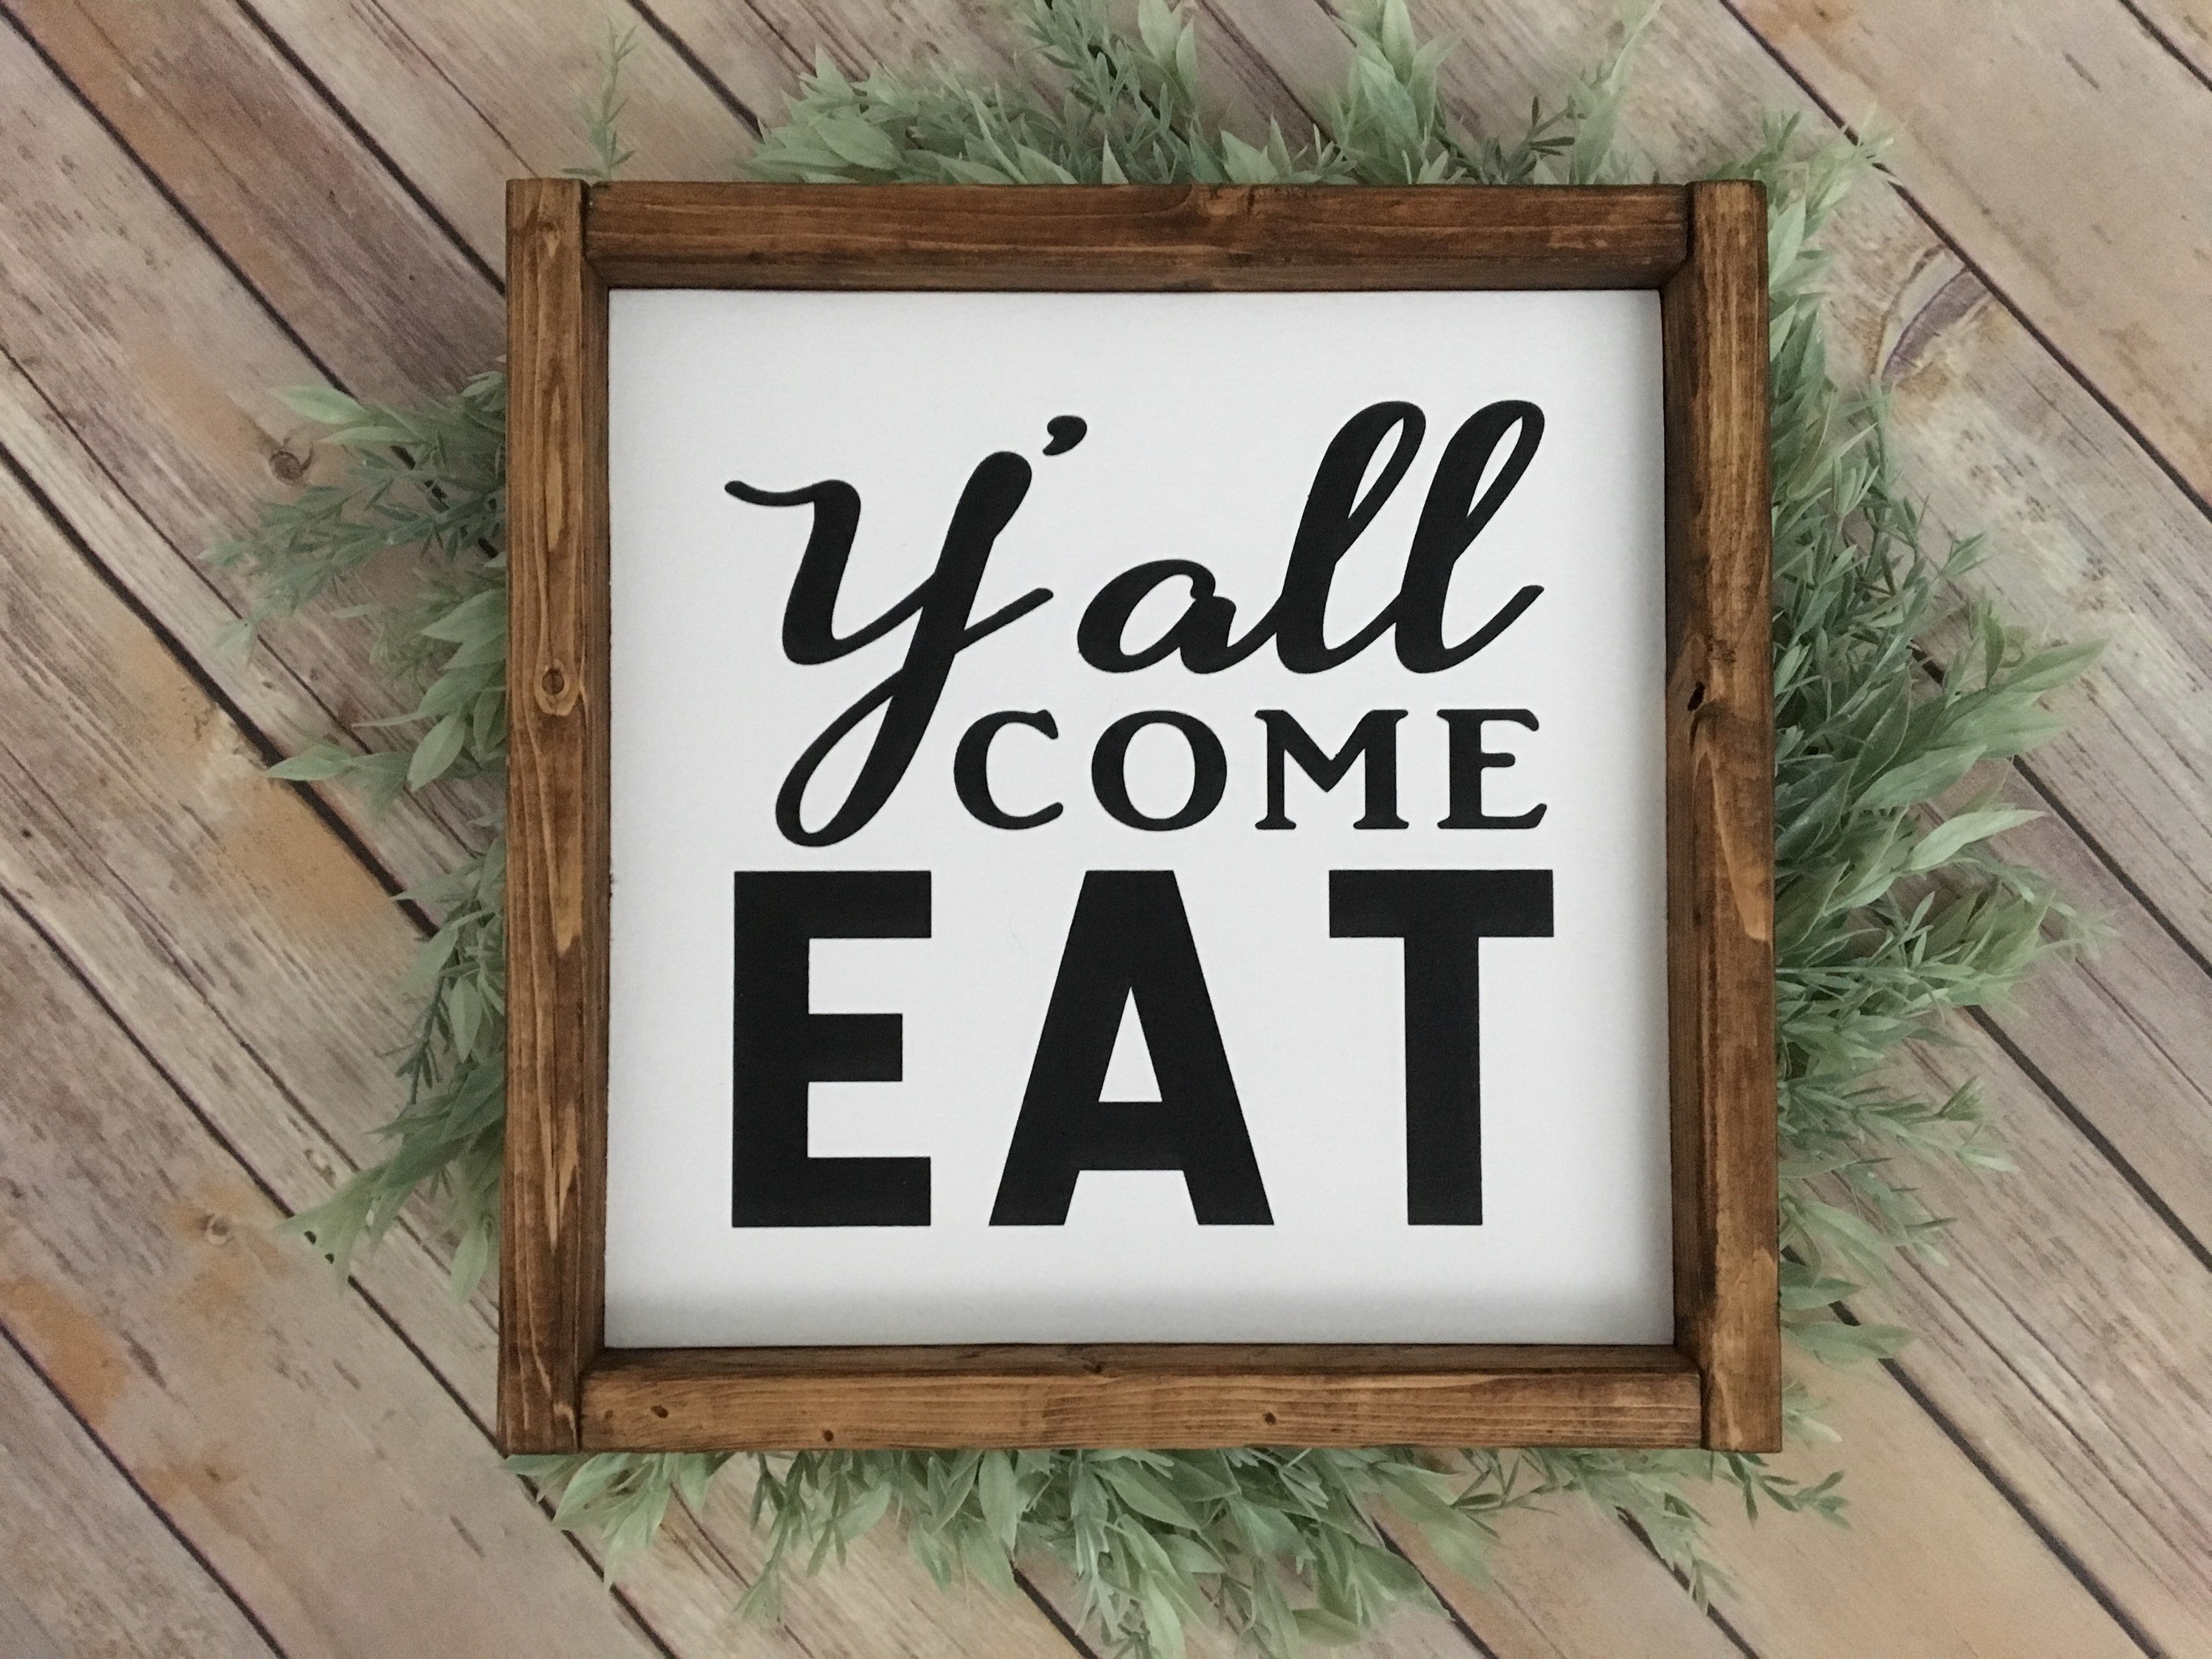 Etsy Pertaining To Eat Rustic Farmhouse Wood Wall Decor (View 18 of 20)